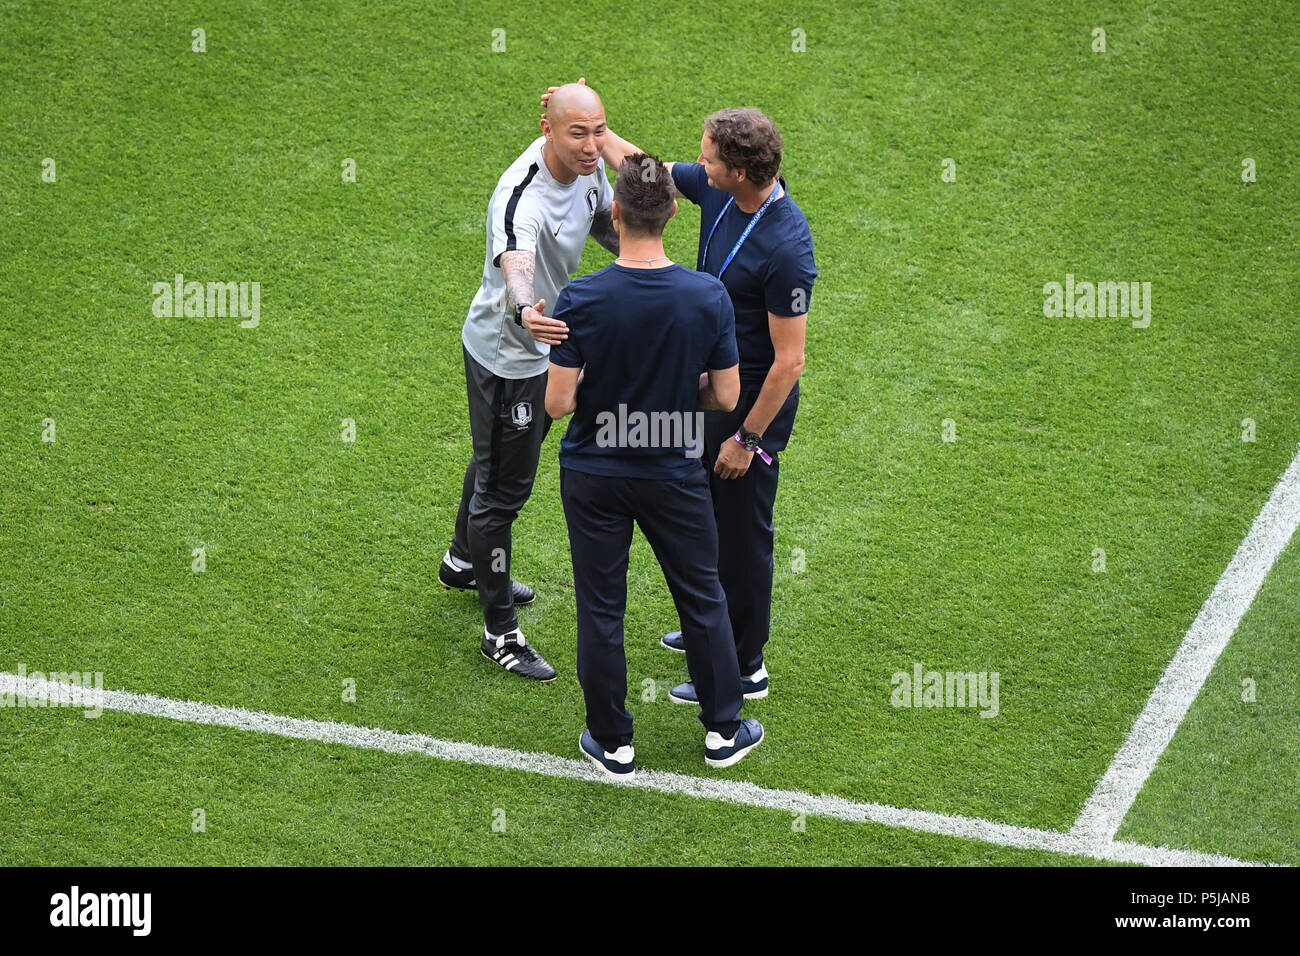 Kazan russland 27th june 2018 du ri cha south korea assistant du ri cha south korea assistant coach miroslav klose dfb and assistant coach marcus sorg germany greet each other before the match m4hsunfo